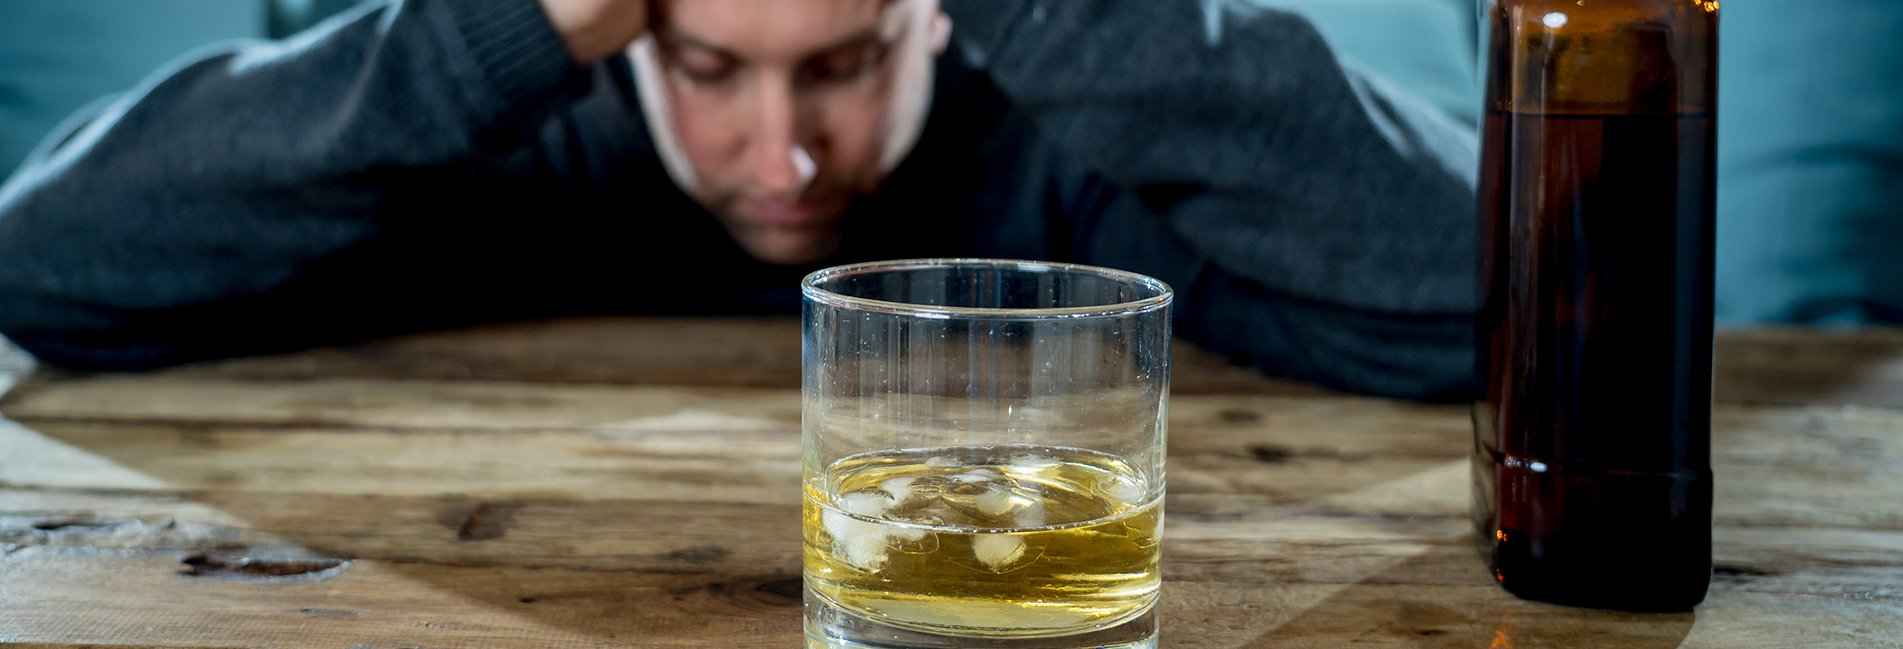 reasons-to-stay-sober-in-difficult-times